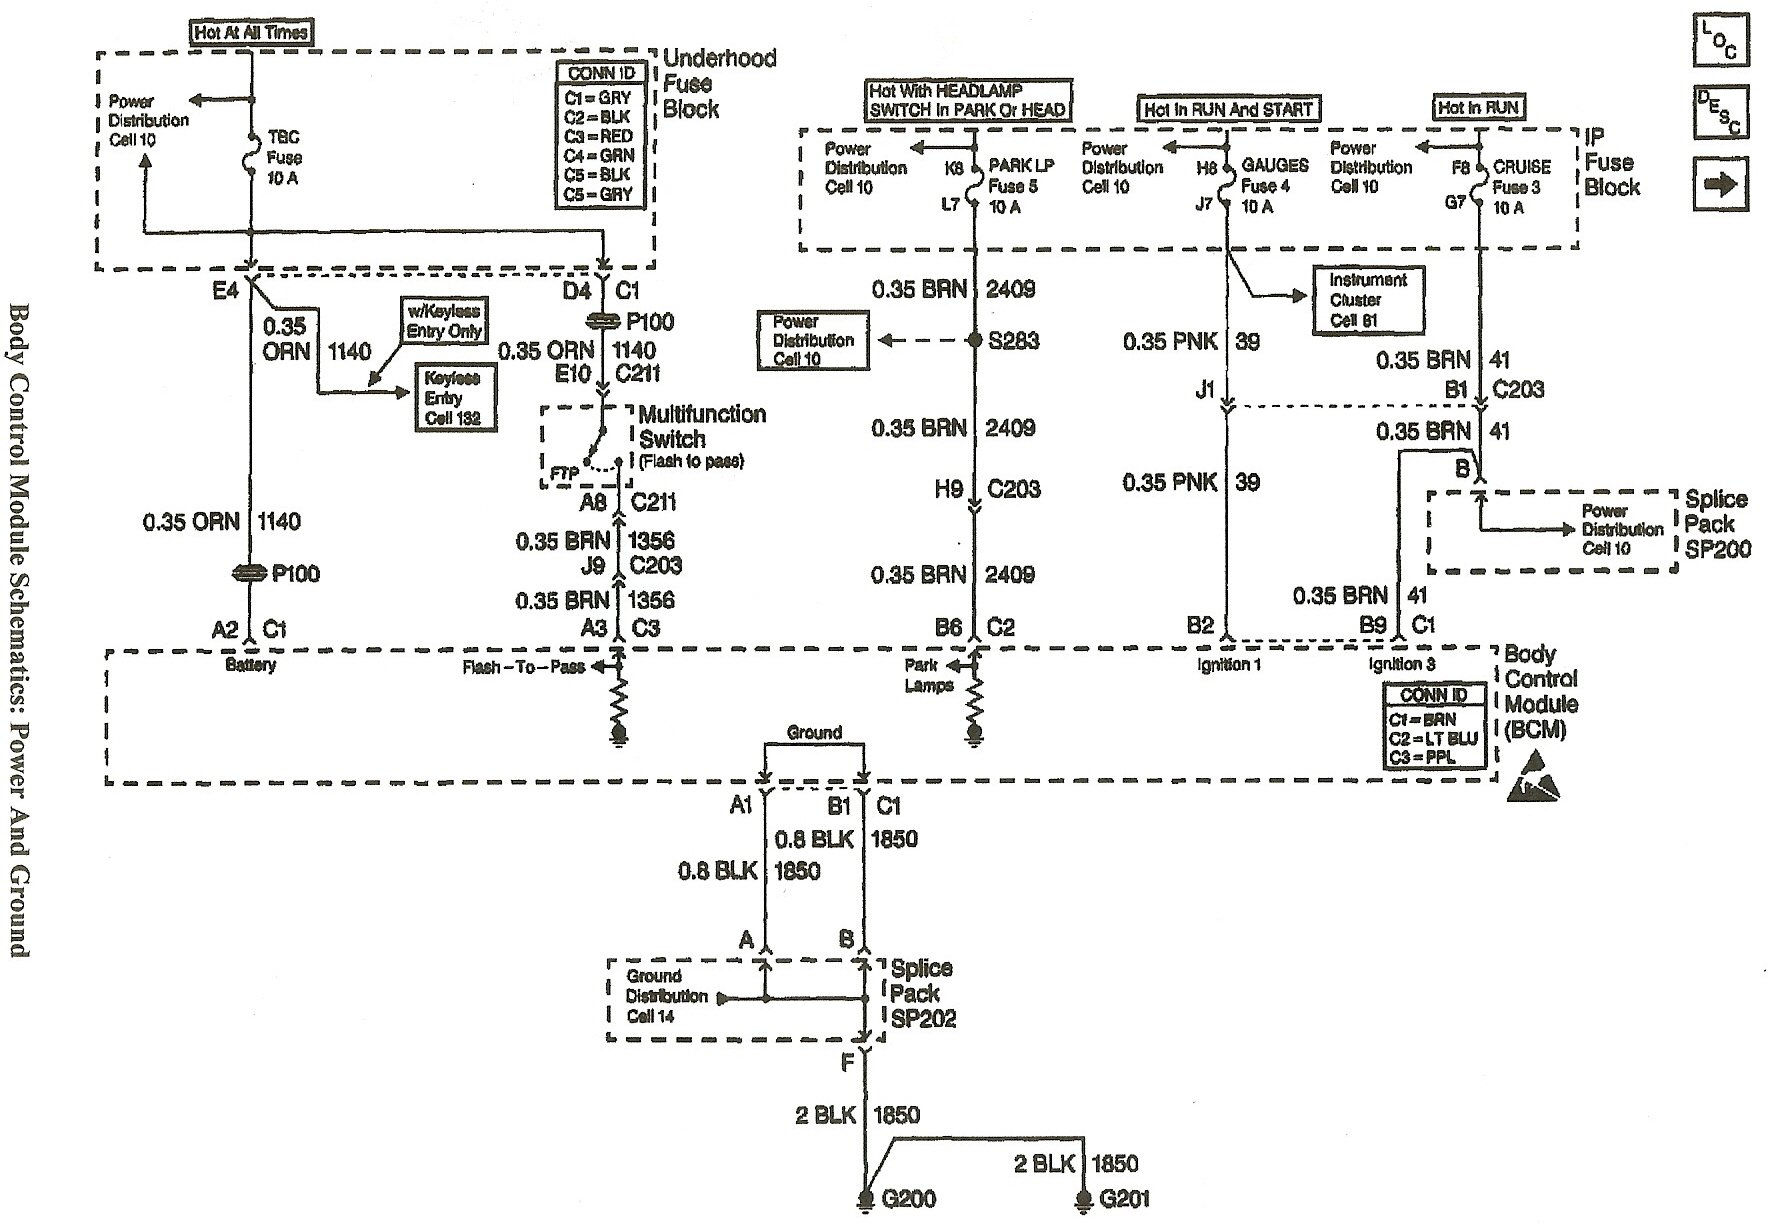 Do You Also Have A Wiring Diagram For This Body Control